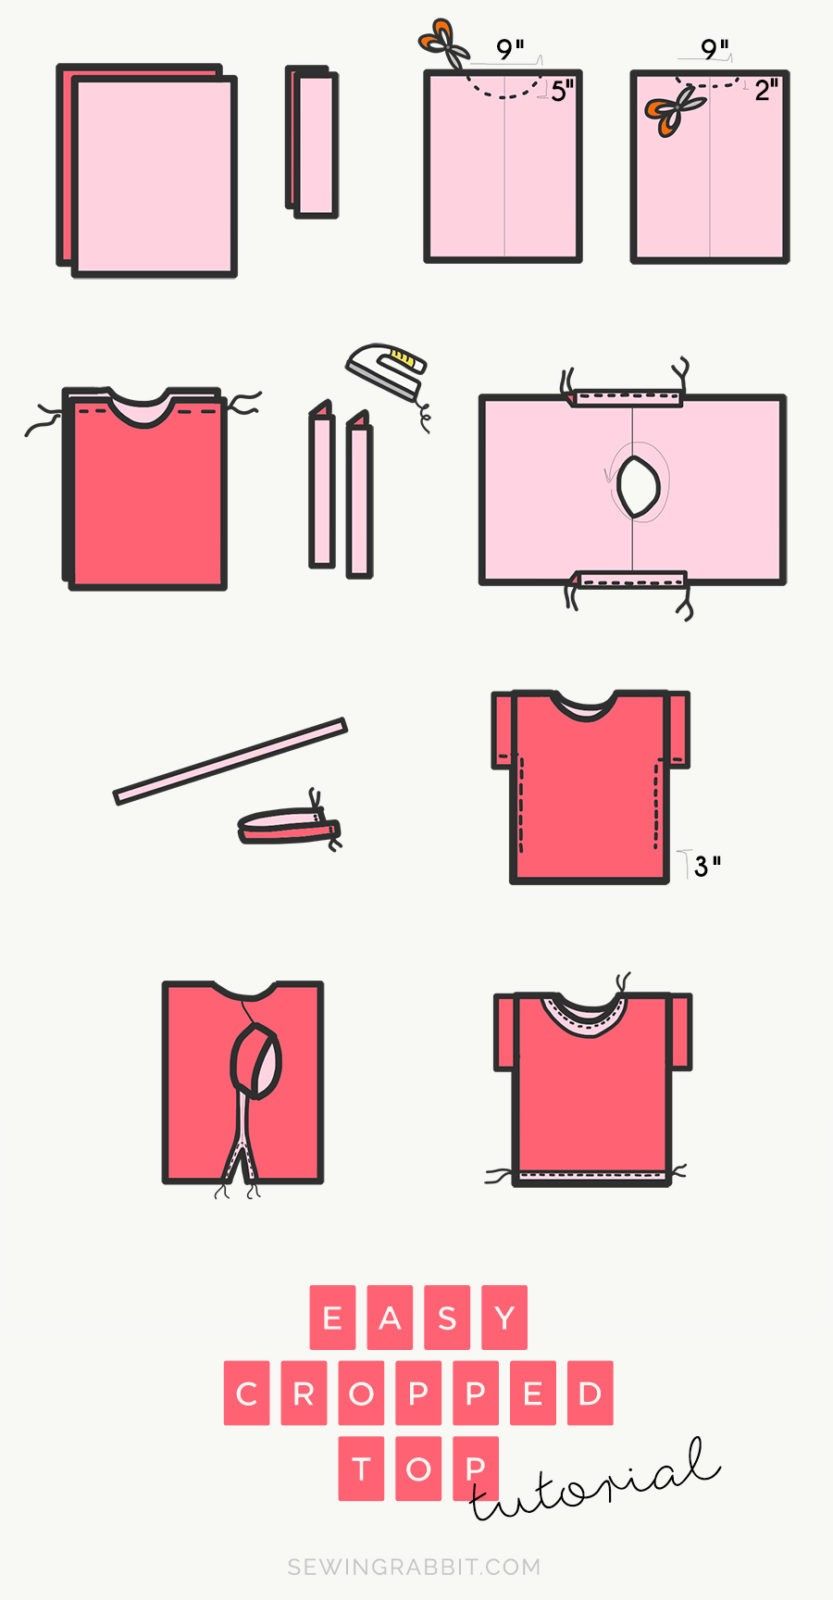 HOW TO SEW AN EASY WOMEN'S TOP